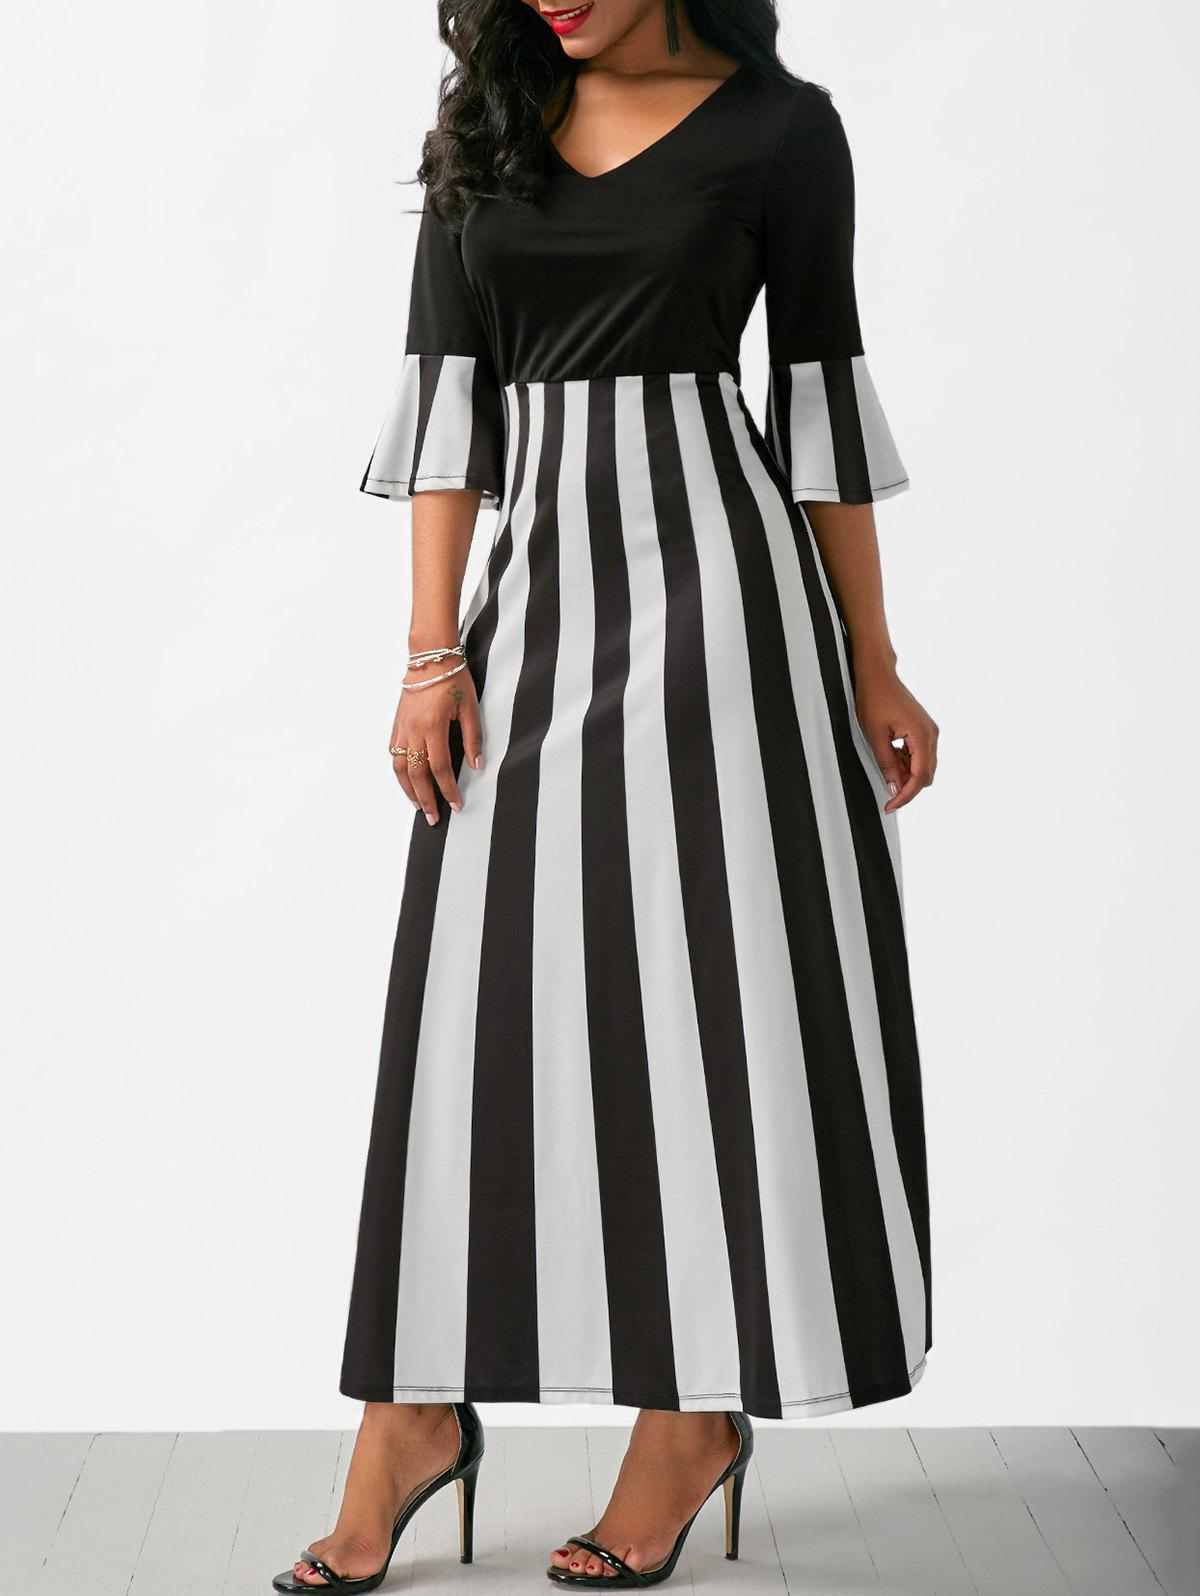 New V Neck Flare Sleeve Striped Long Dress